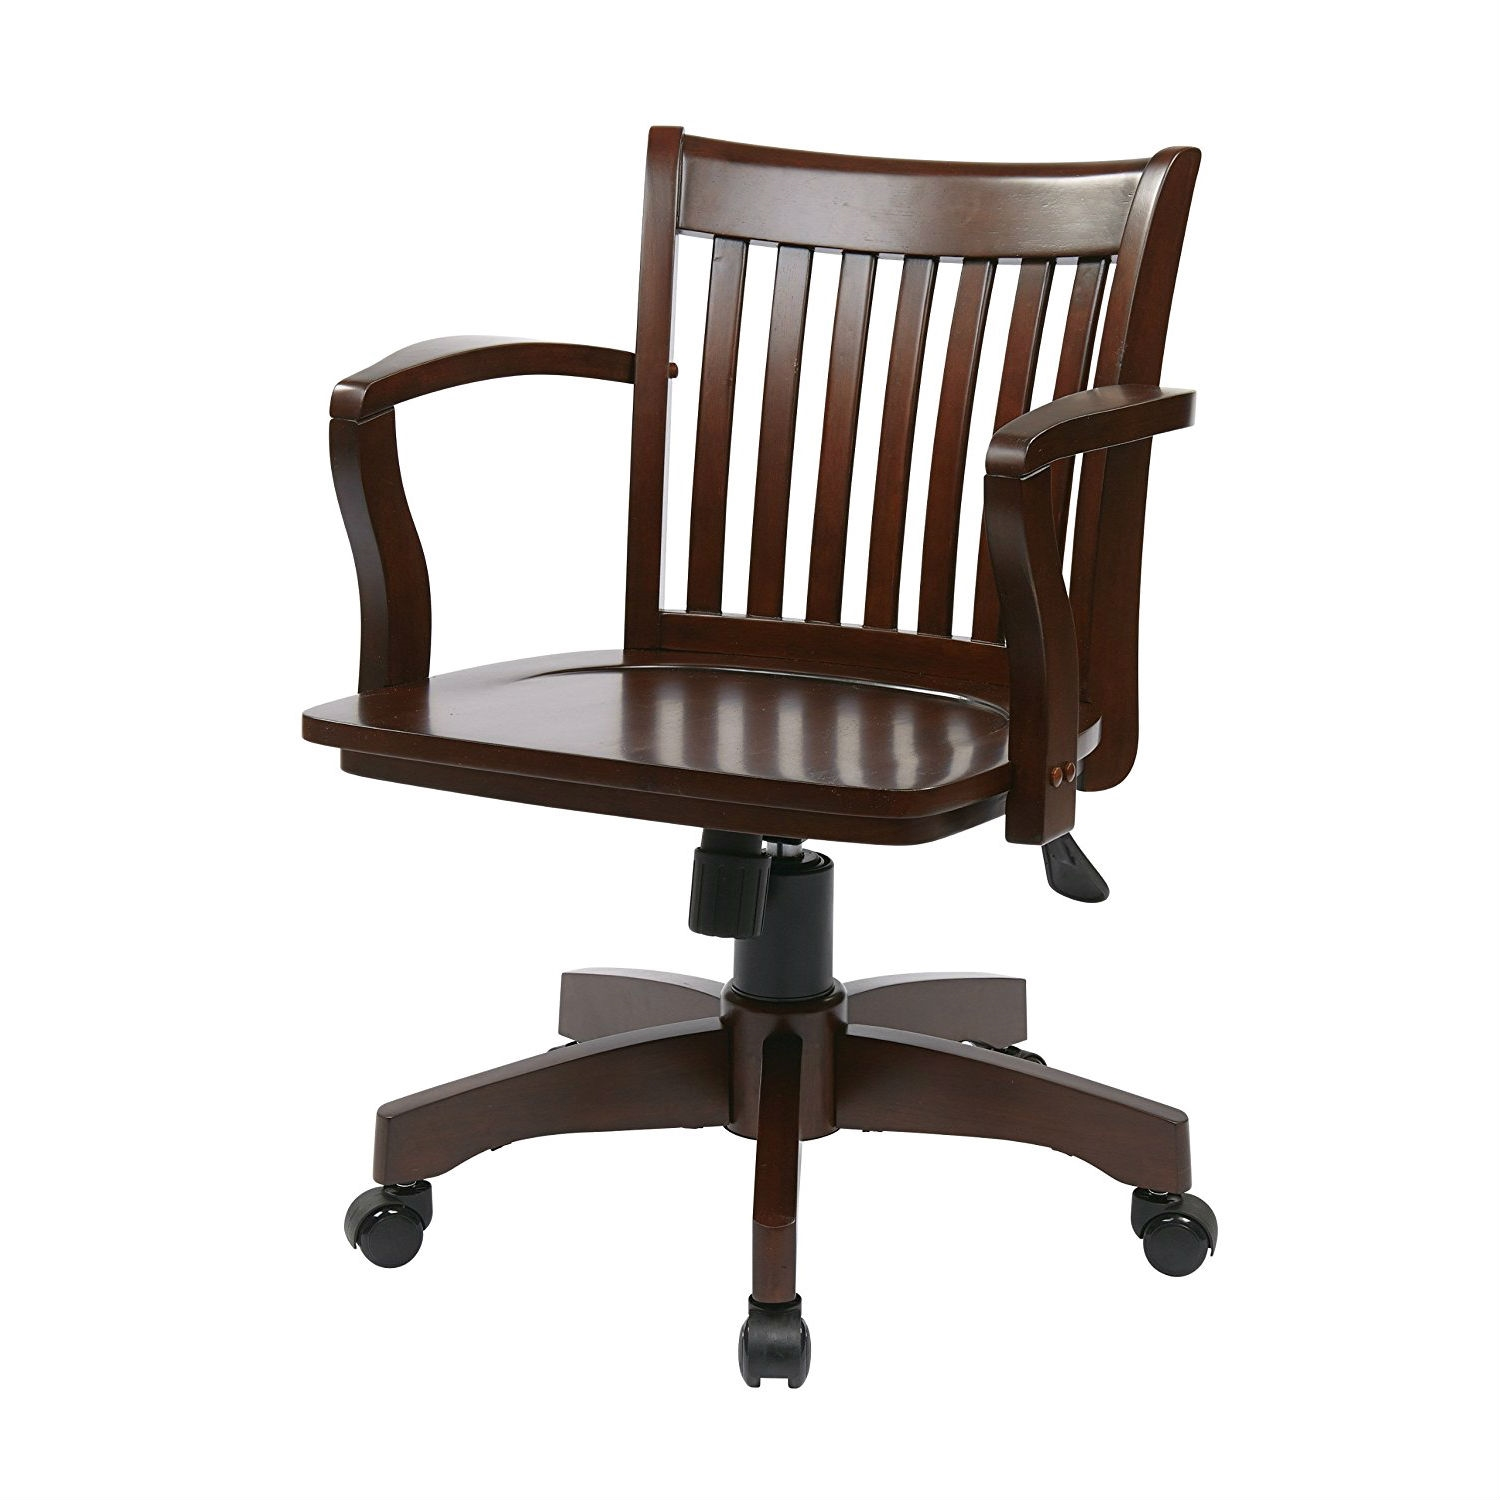 Delicieux Espresso Wood Bankers Chair With Wooden Arms And Seat